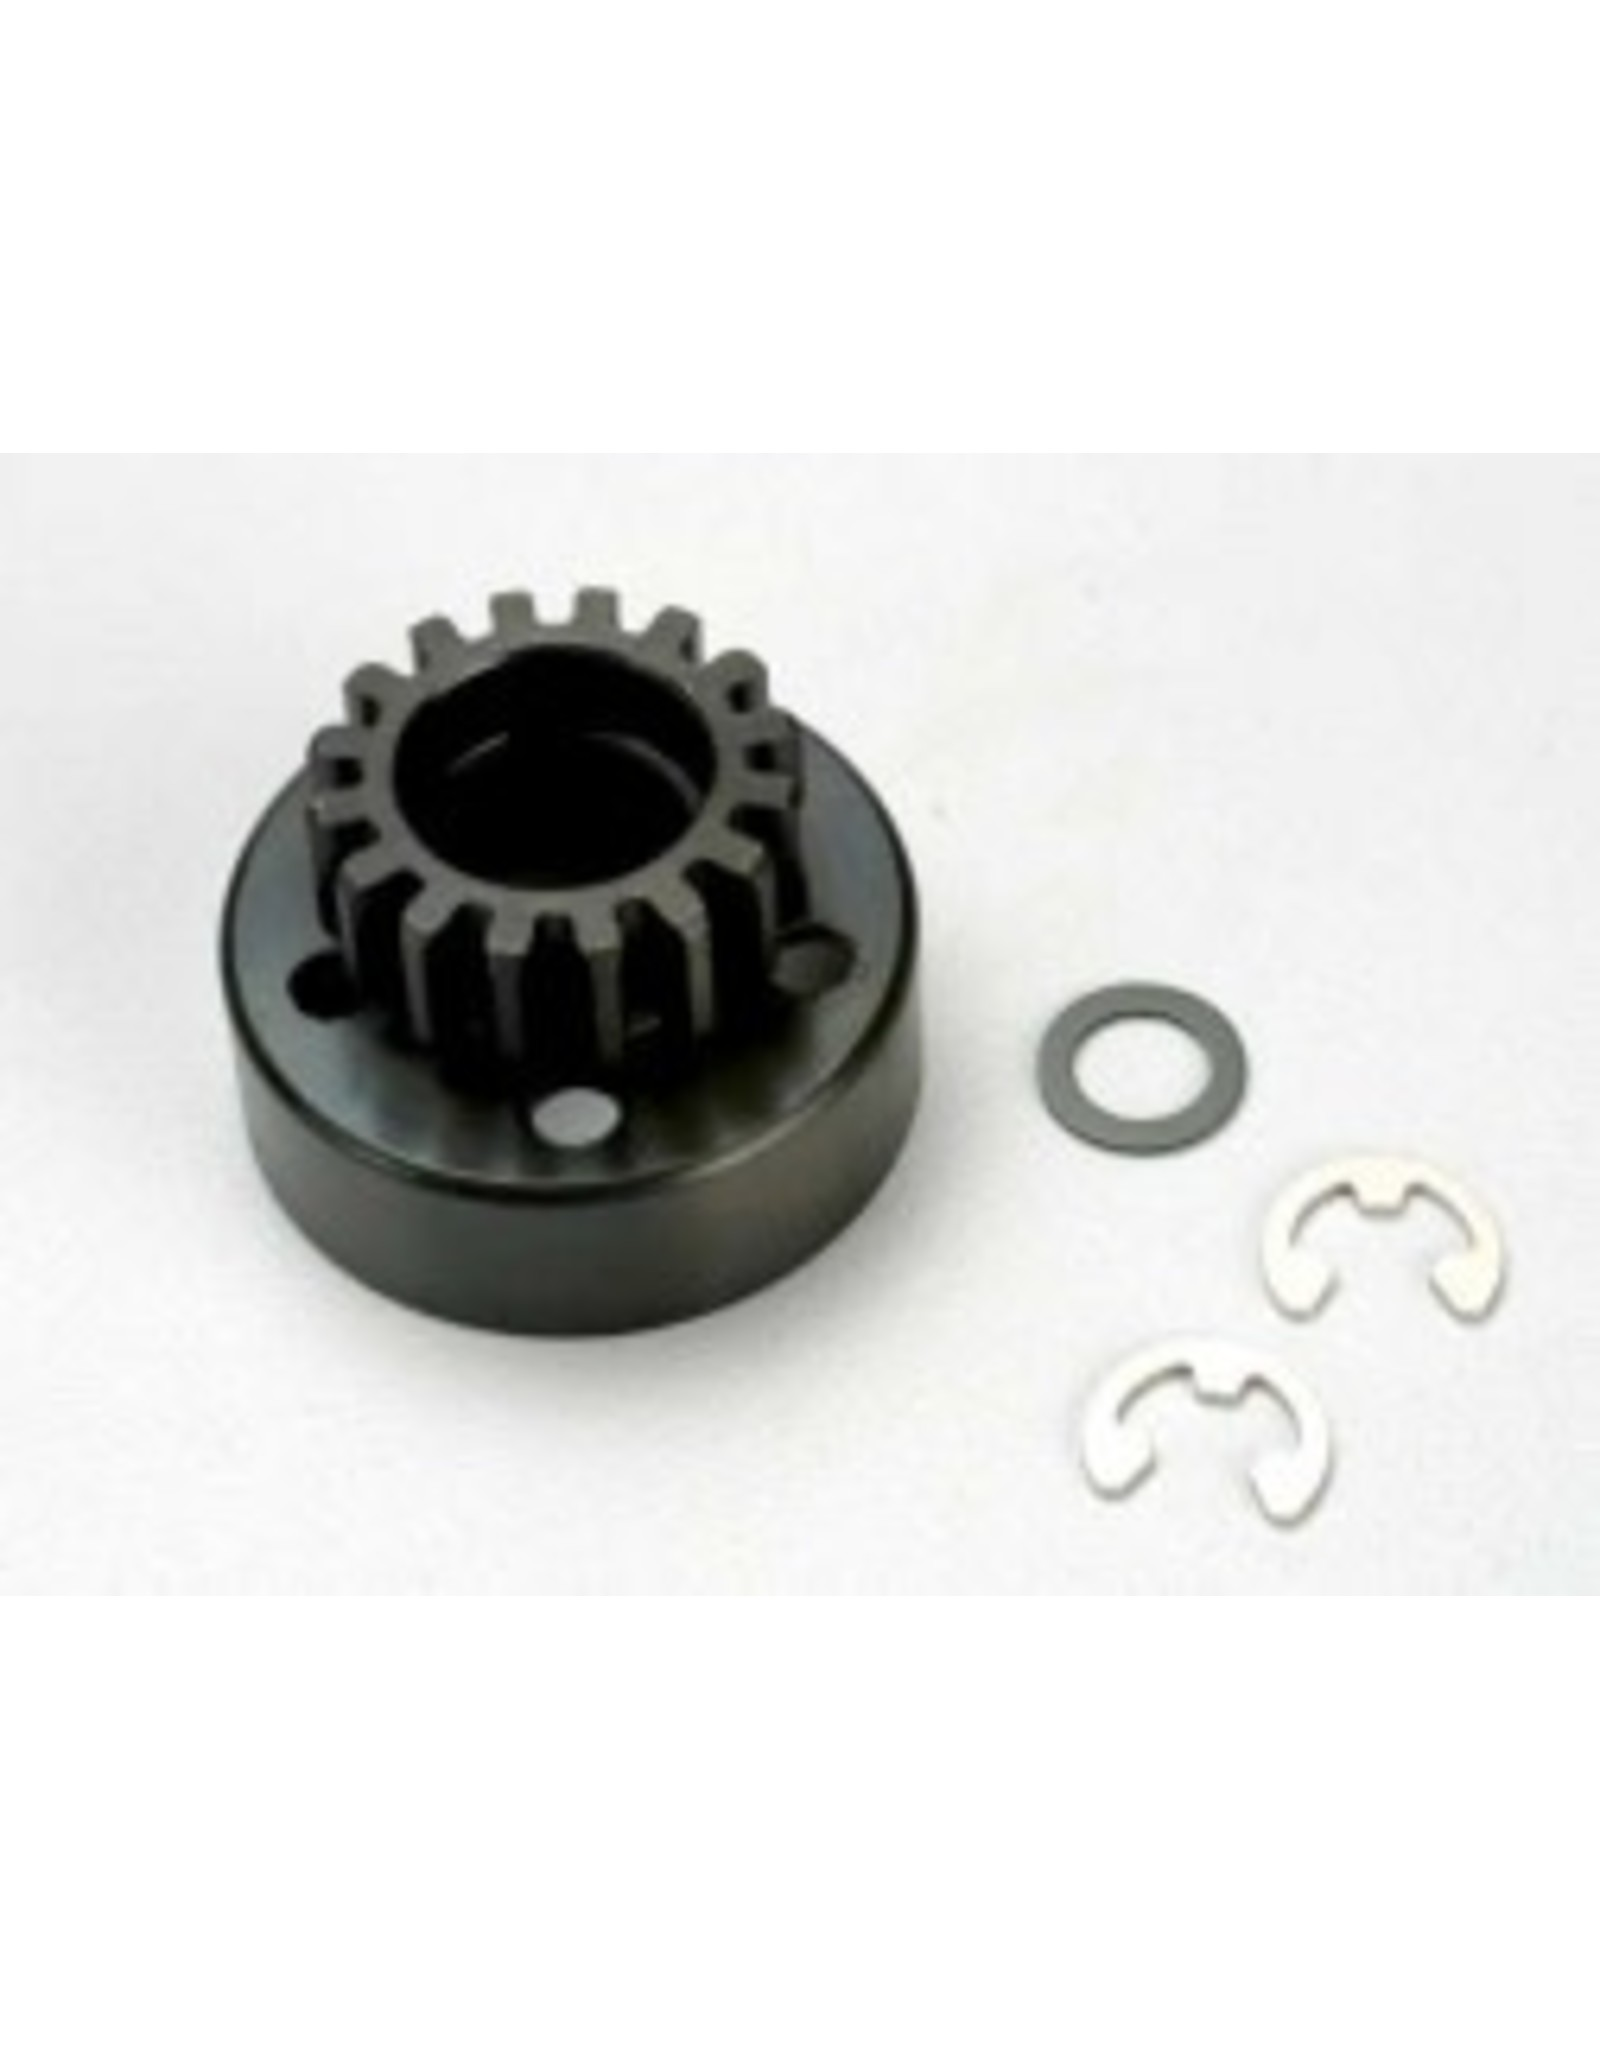 Traxxas Clutch bell (15-tooth)/5x8x0.5mm fiber washer (2)/ 5mm e-clip (requires 5x11x4mm ball bearings part #4611) (1.0 metric pitch)